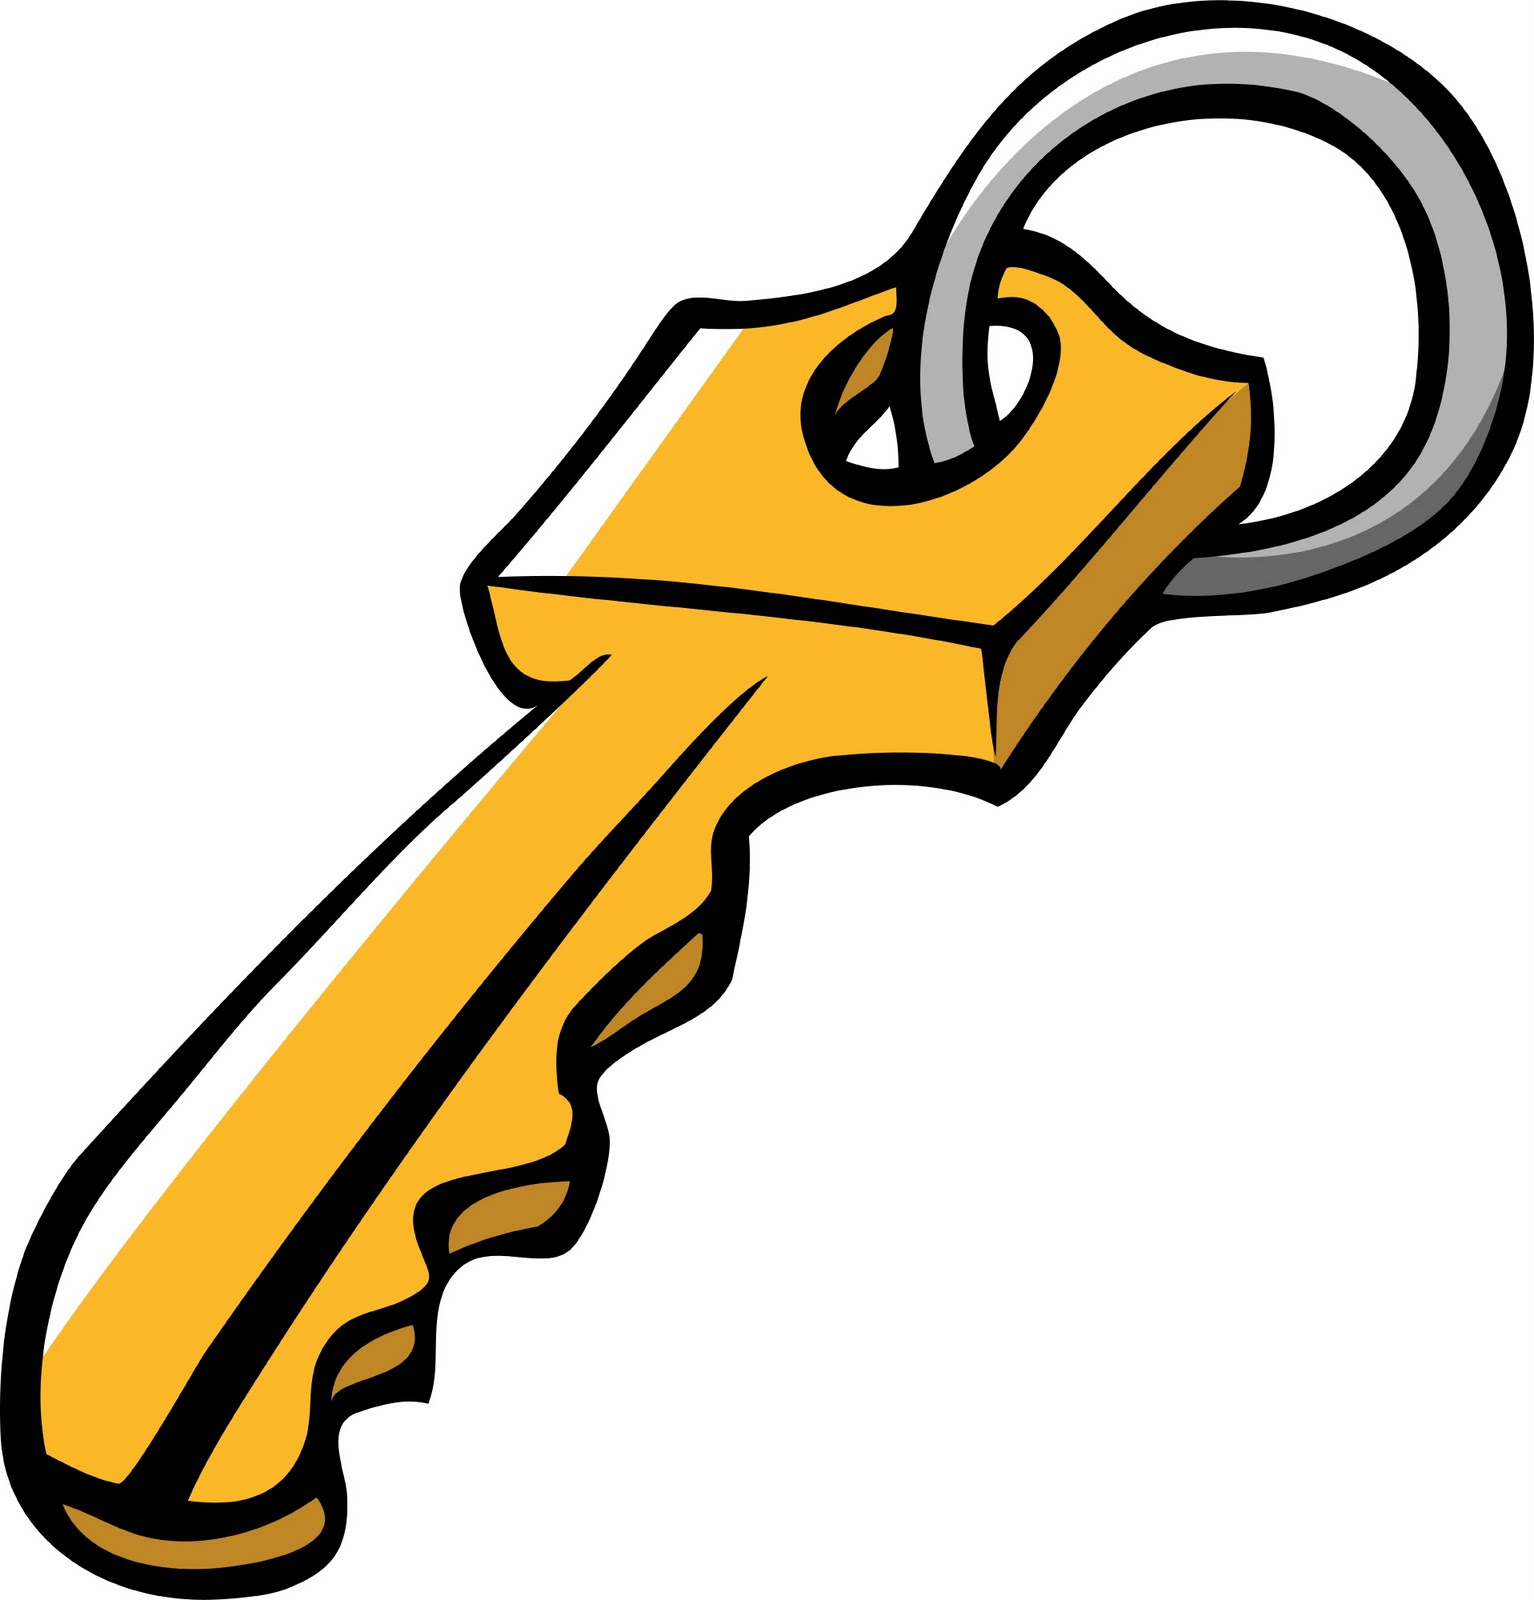 Door key clipart clipart kid.